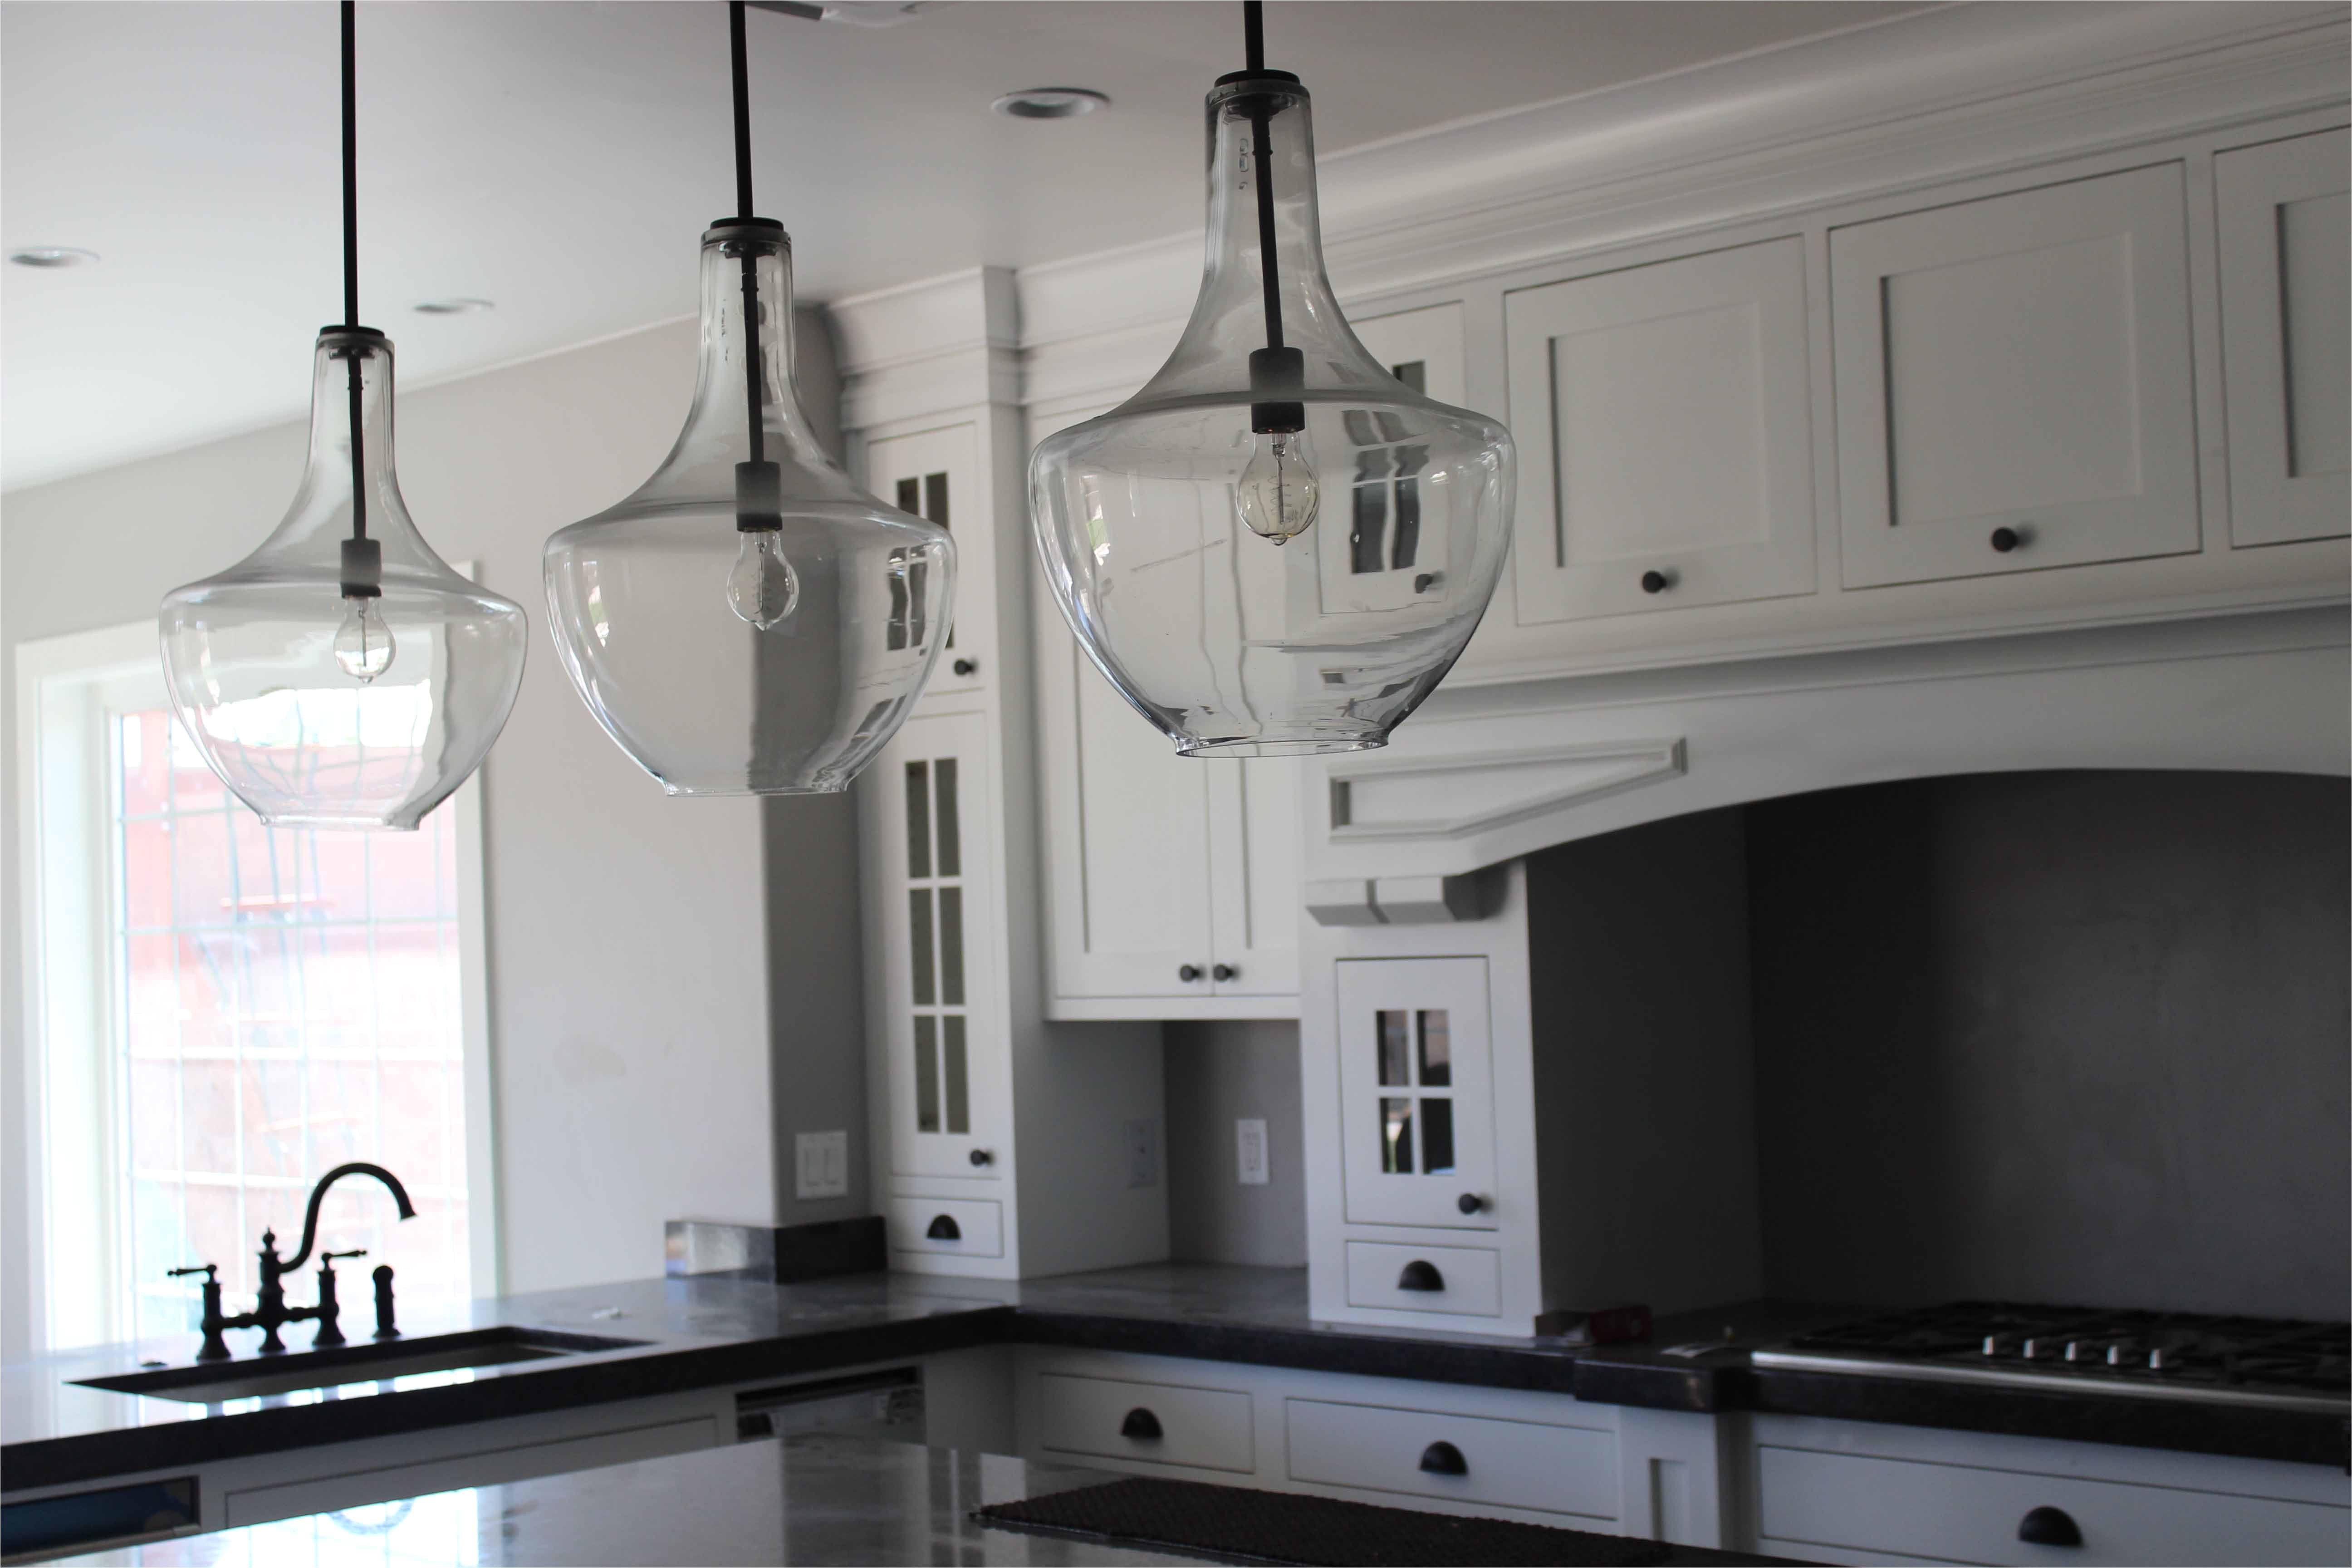 track light kitchen incredible hampton bay track lighting pendant new upholstery services 0d